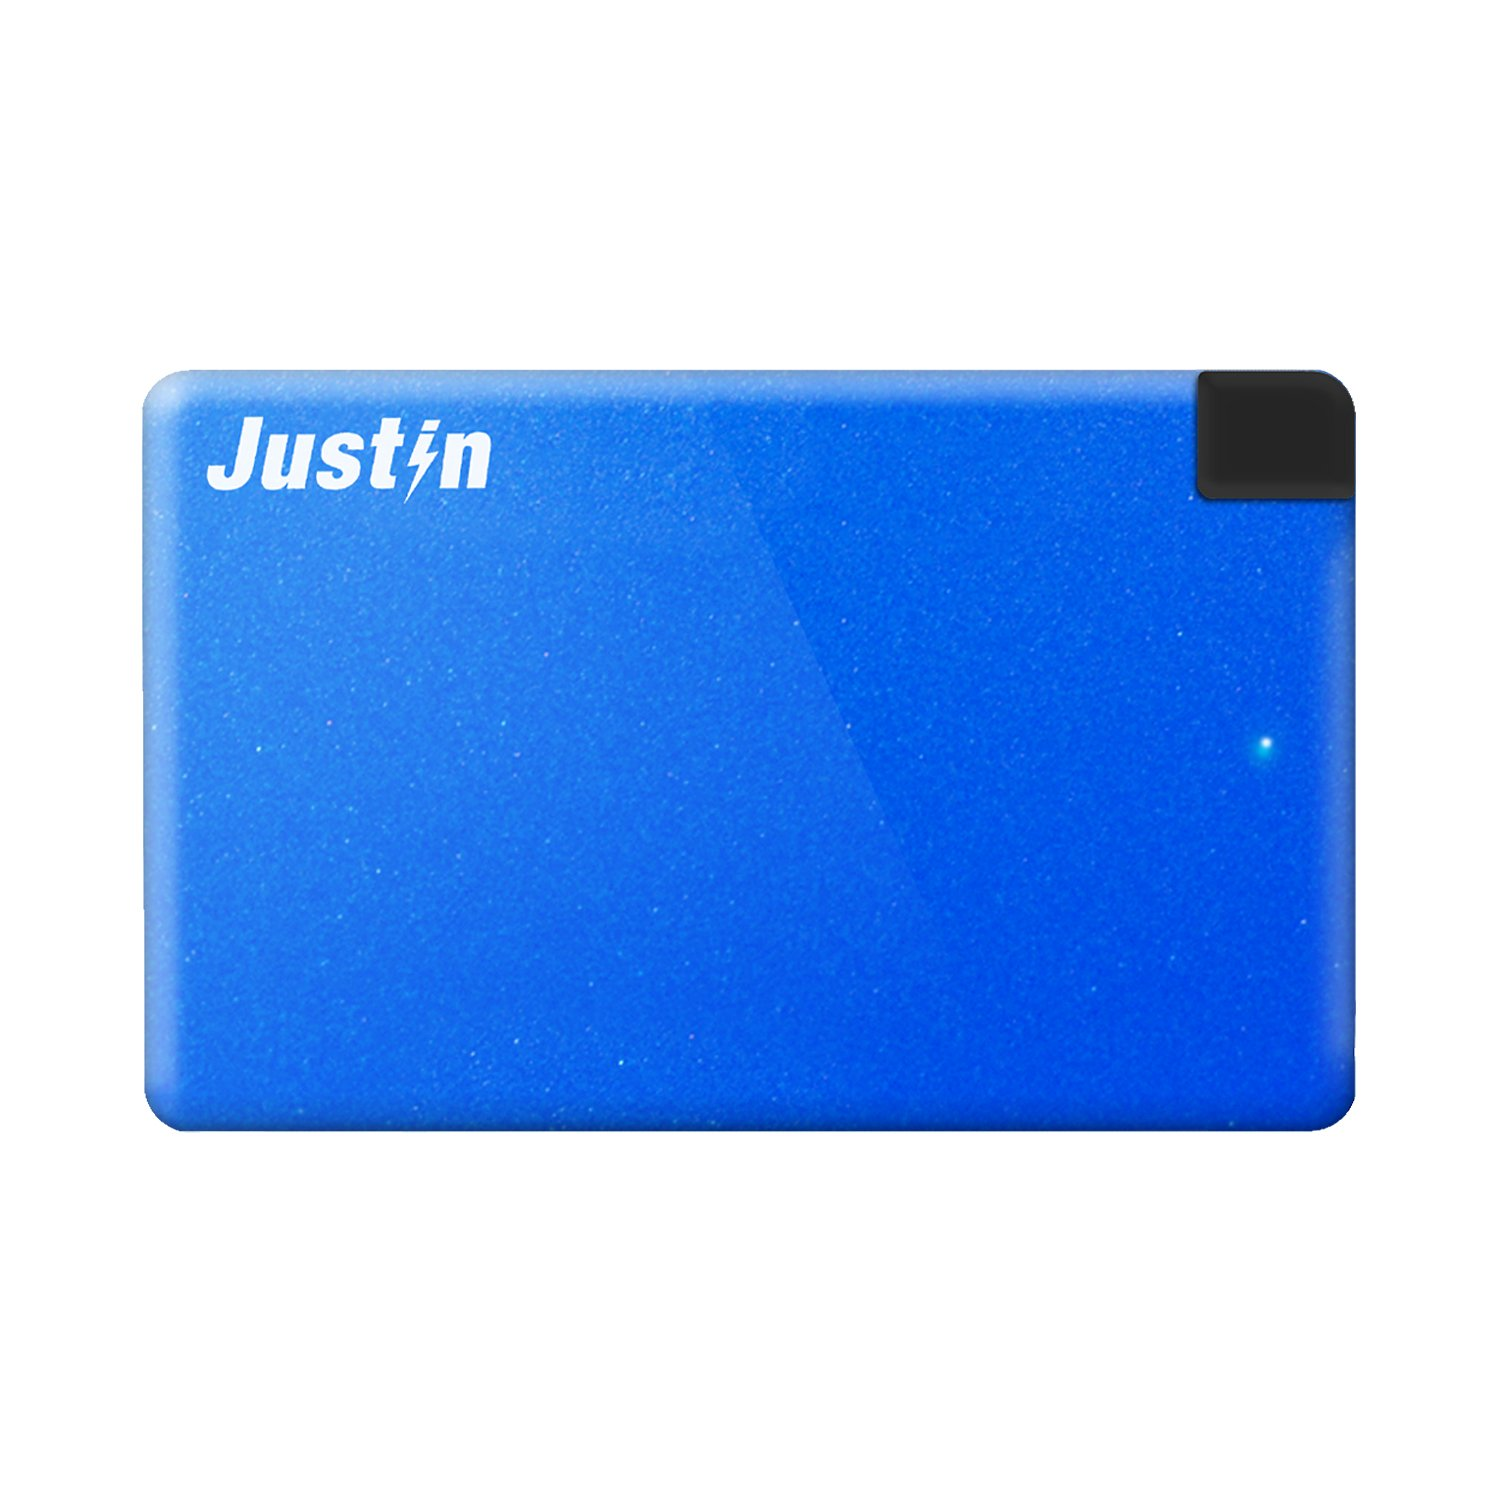 Justin Power 2,500 mAh Slim Power Bank with Built-In Micro-USB Cable, Blue